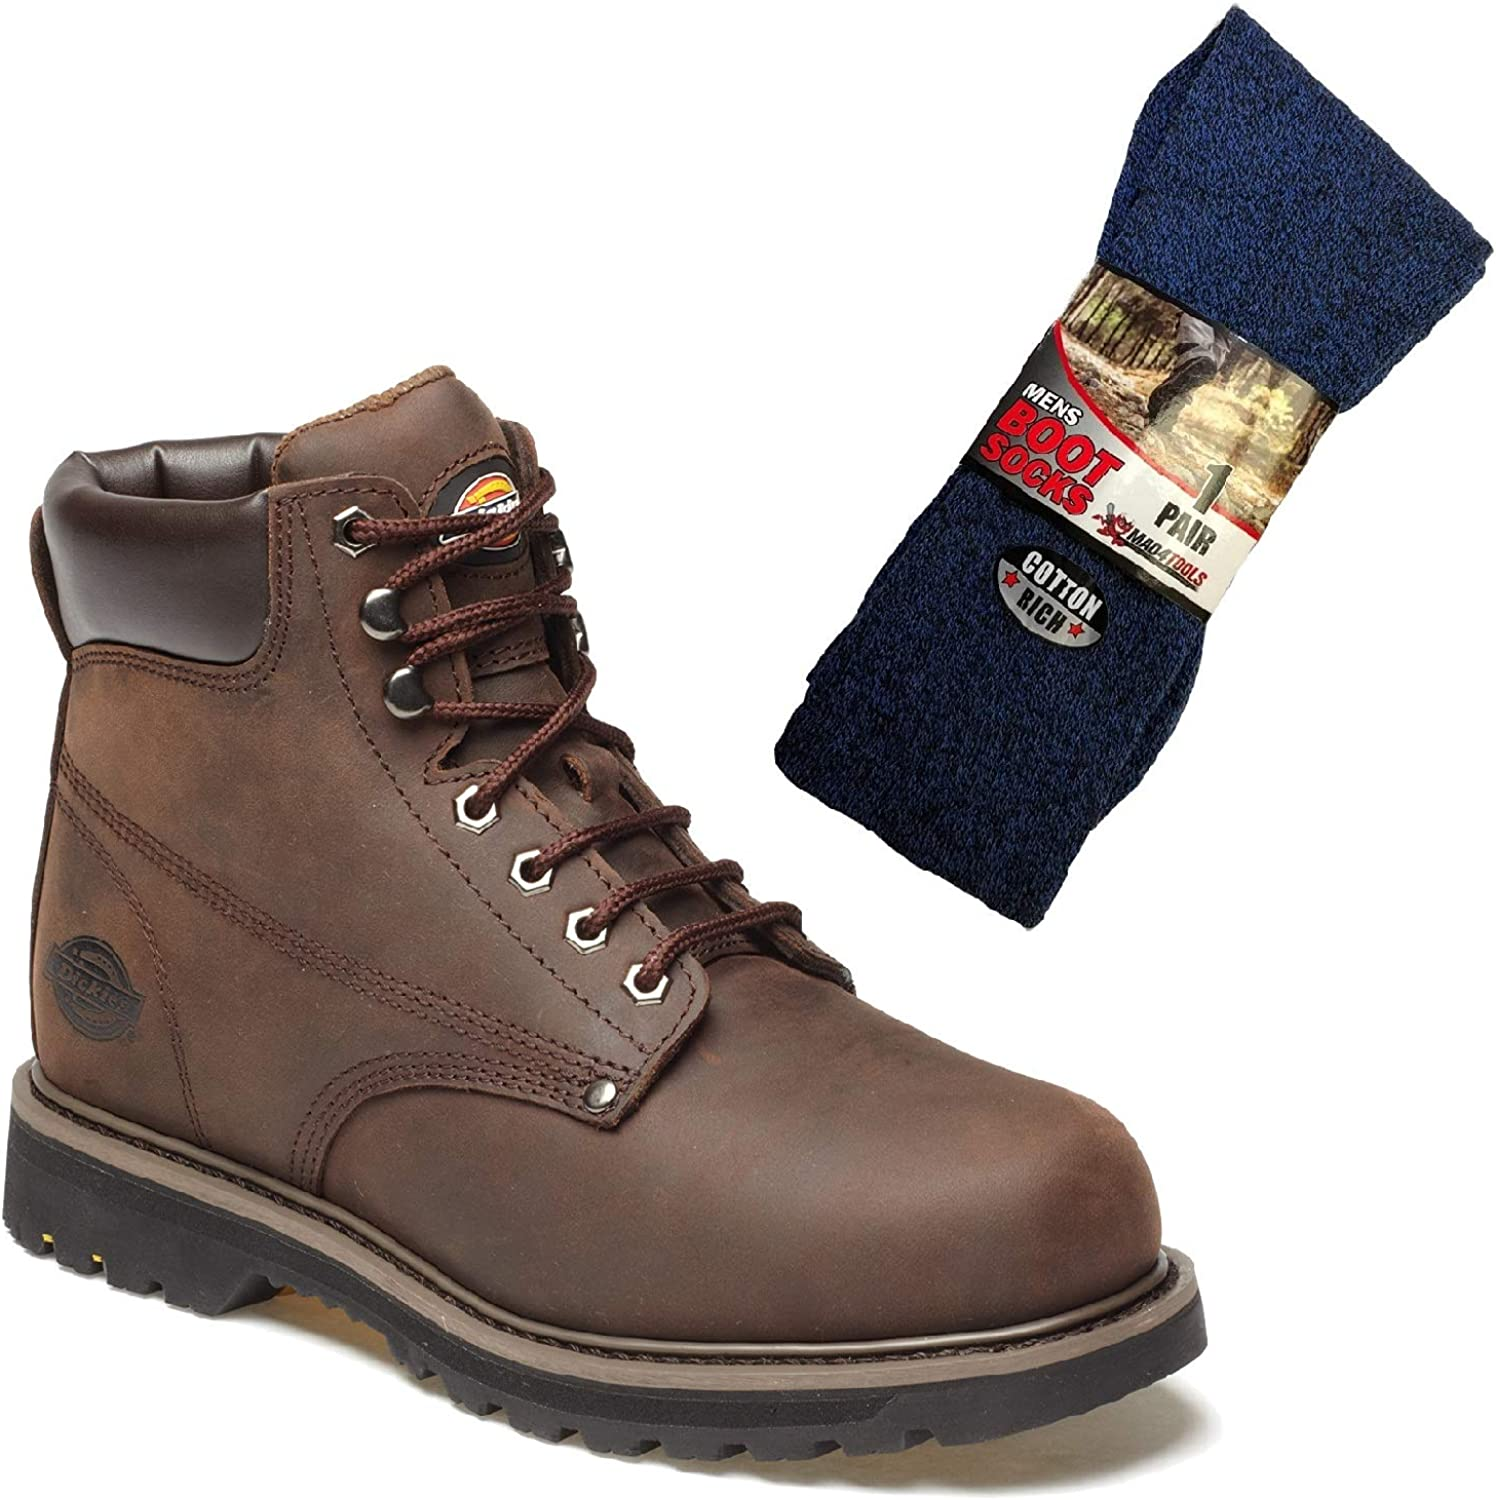 6863895bc7d Dickies Welton Non-Safety Work Boots and Boot Socks nqsphv2465-New ...